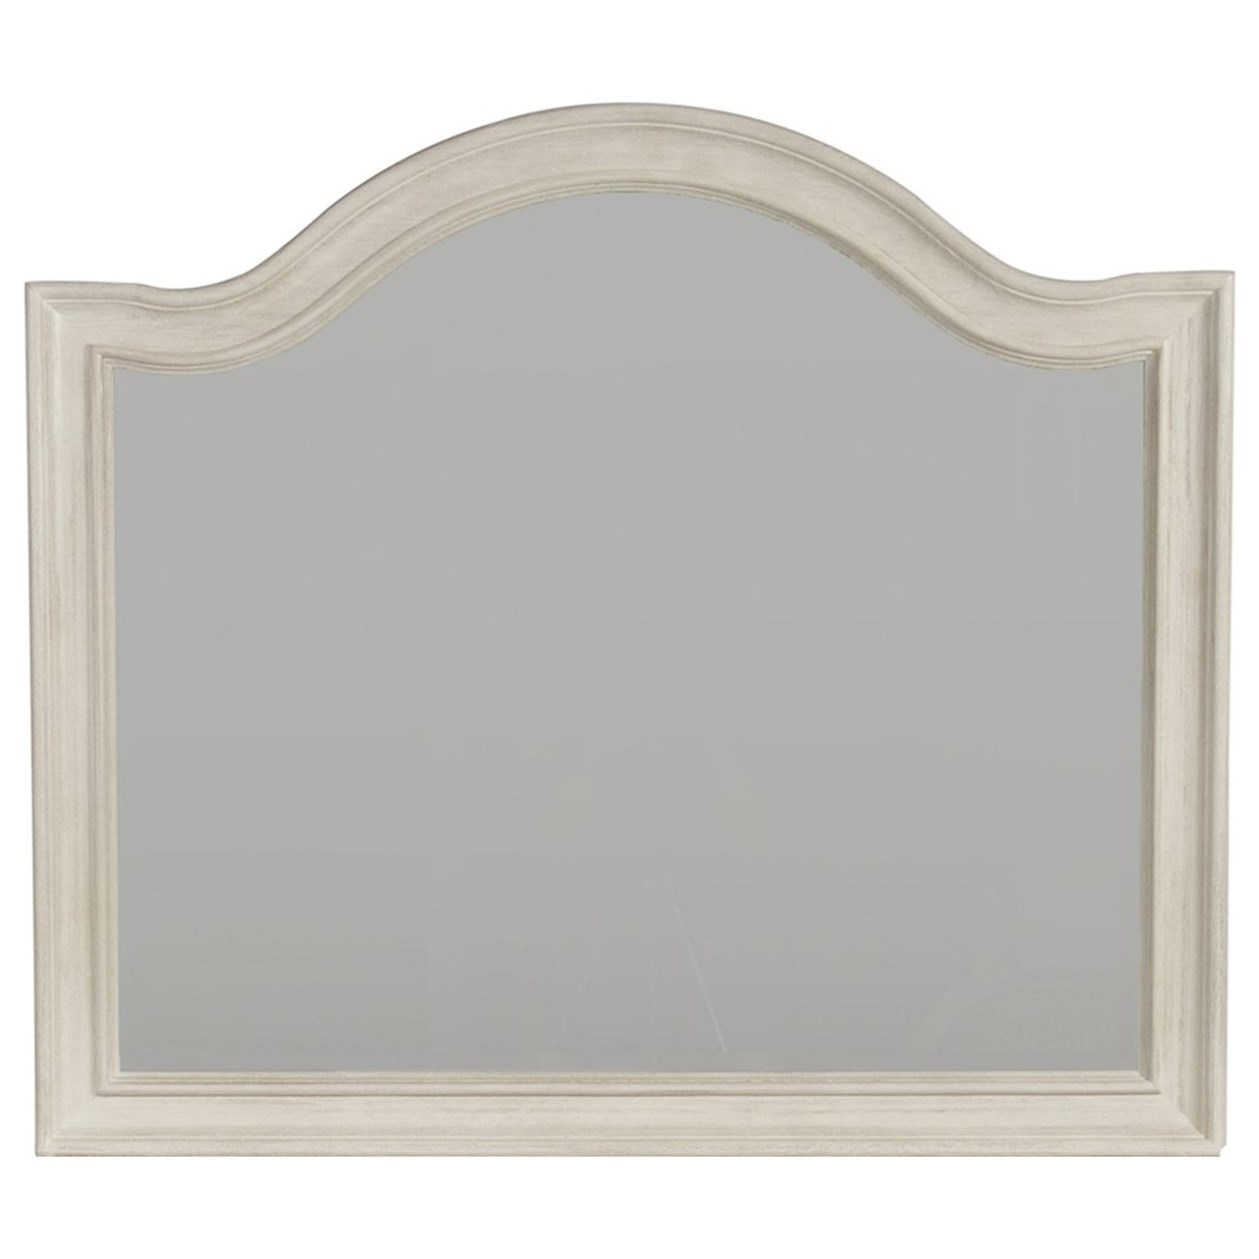 Bayside Bedroom Arched Mirror by Libby at Walker's Furniture